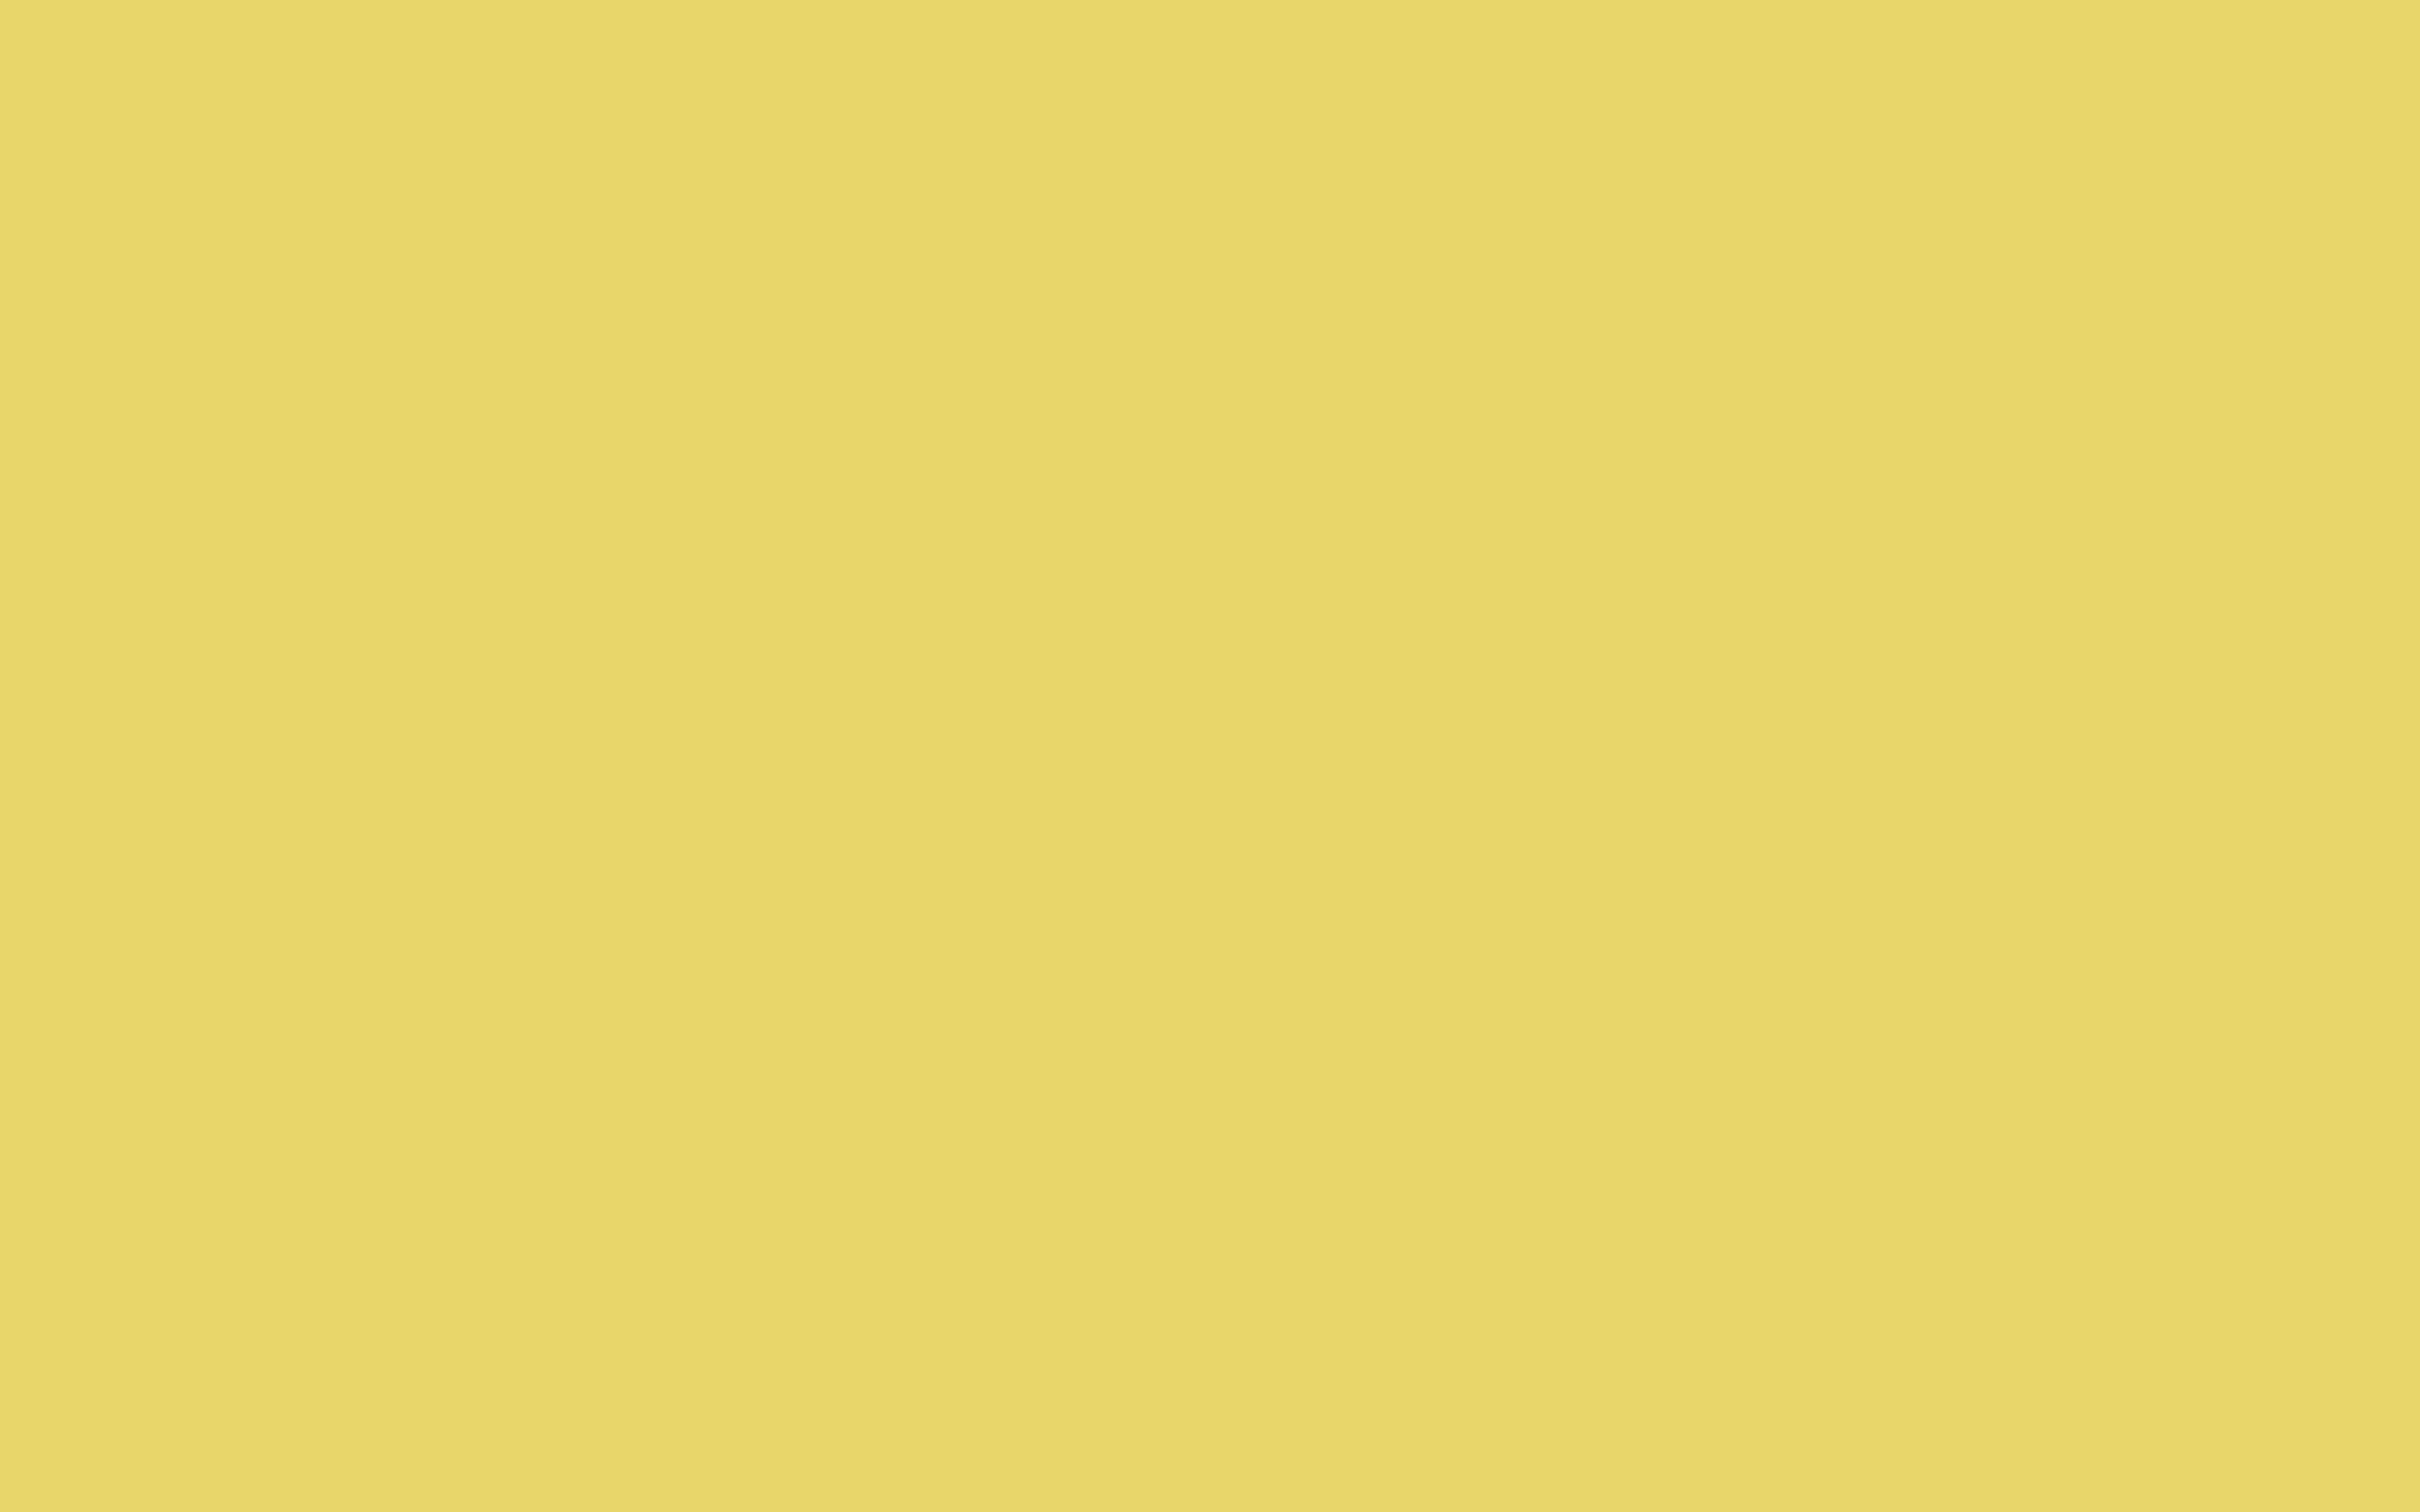 2880x1800 Arylide Yellow Solid Color Background